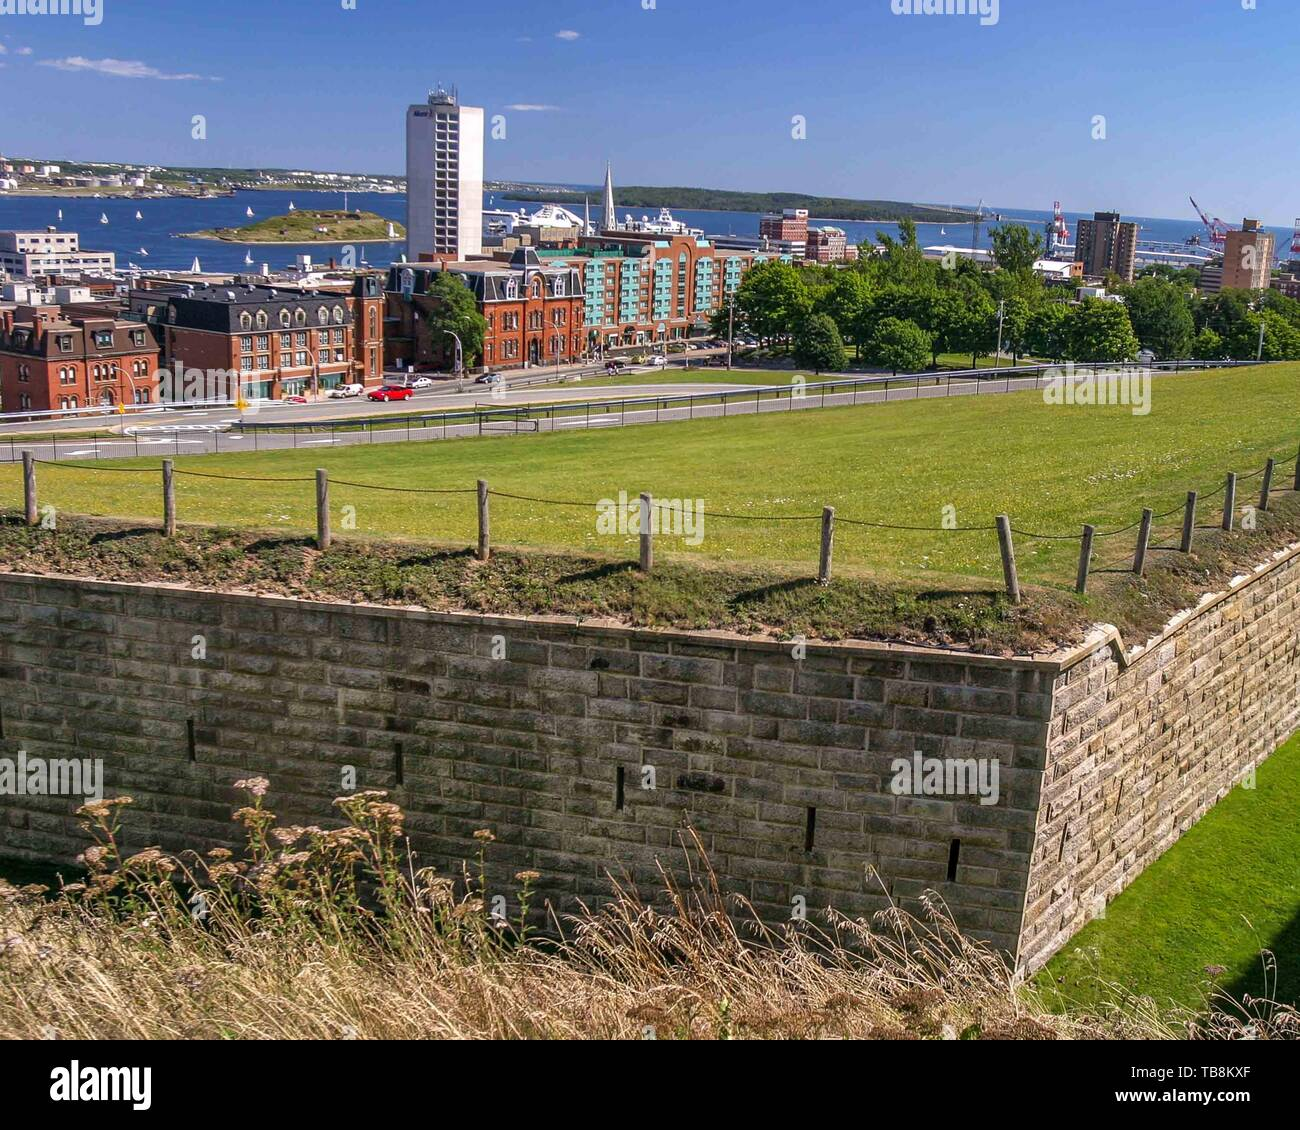 Halifax, Nova Scotia, Canada. 5th Sep, 2005. The Fort George defense wall, a fortified summit of Citadel Hill, a Canadian National Historic Site, rises above Halifax, Nova Scotia and its harbor. The fort is among the most visited sites in Atlantic Canada. Credit: Arnold Drapkin/ZUMA Wire/Alamy Live News - Stock Image